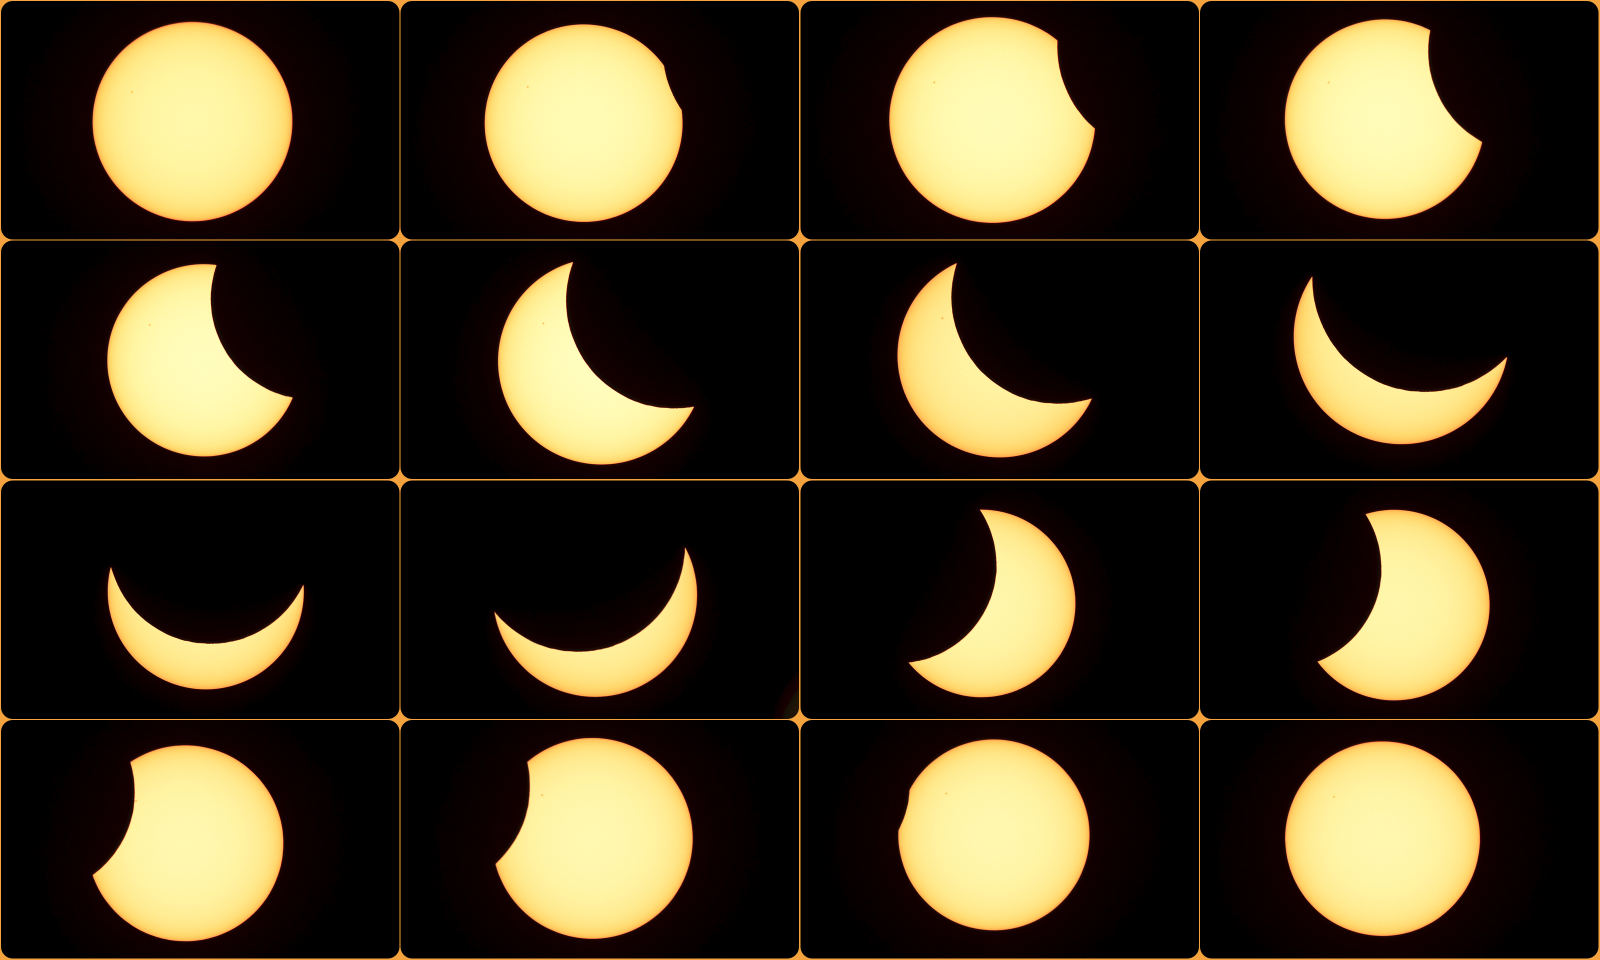 Partielle Sonnenfinsternis am 20.03.2015